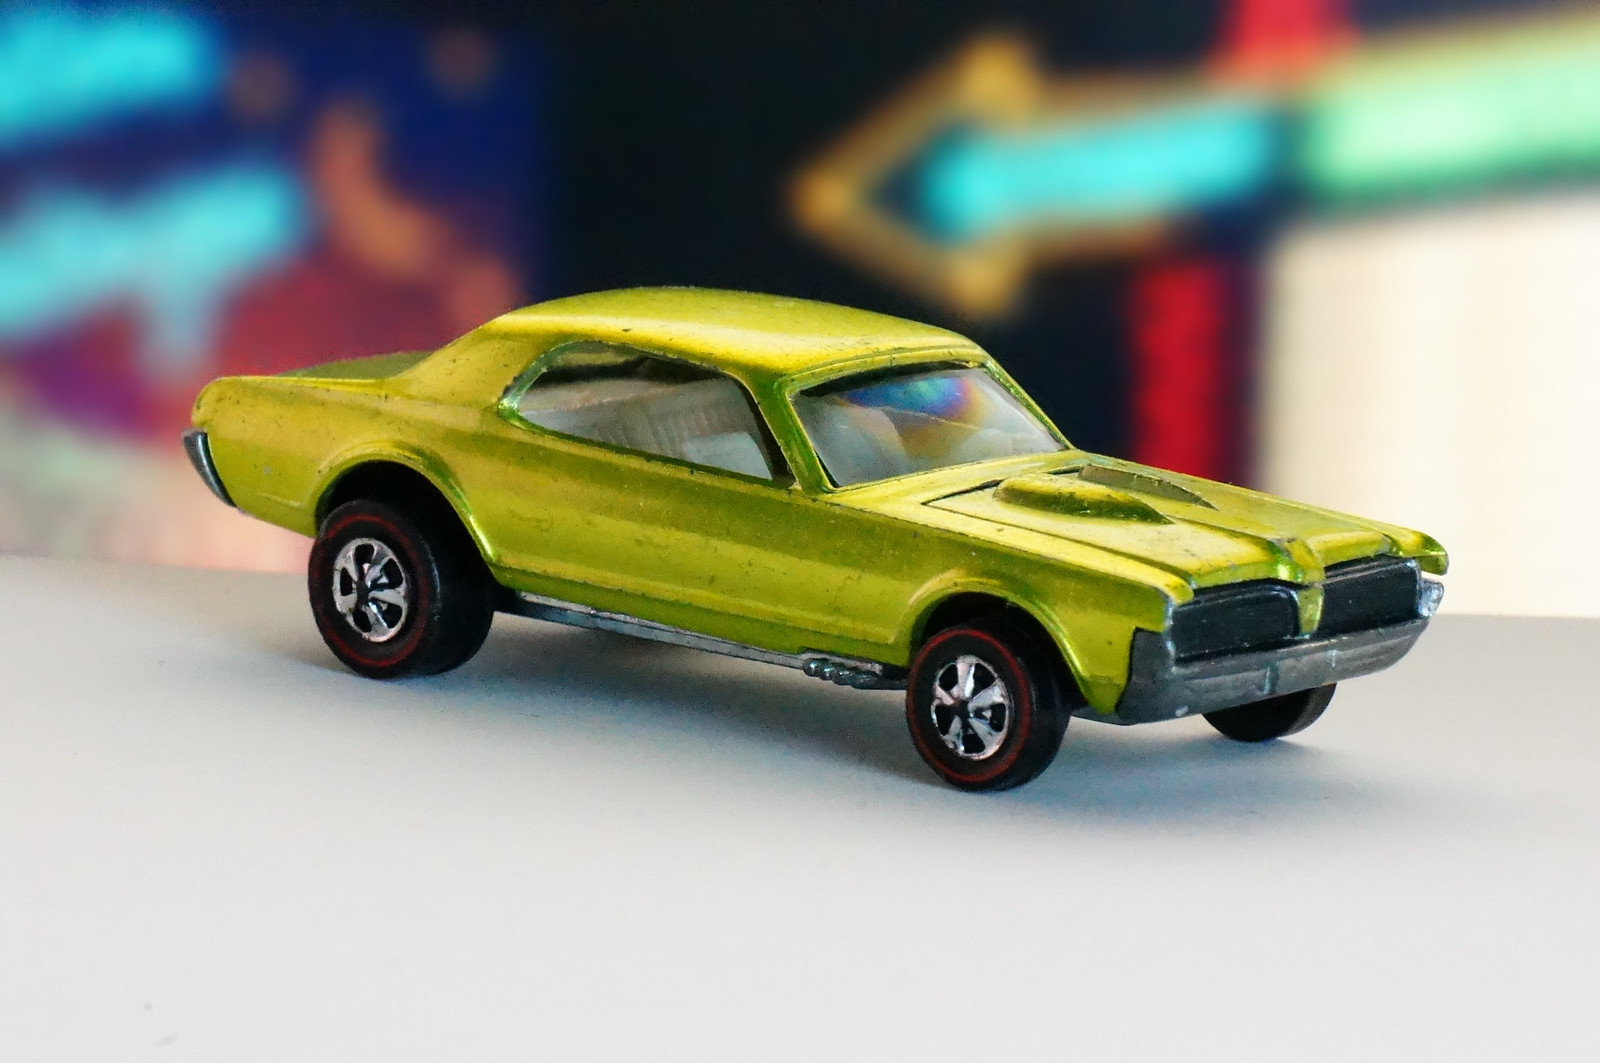 Hot Wheels Redline Lime Yellow Custom Cougar US Early Production